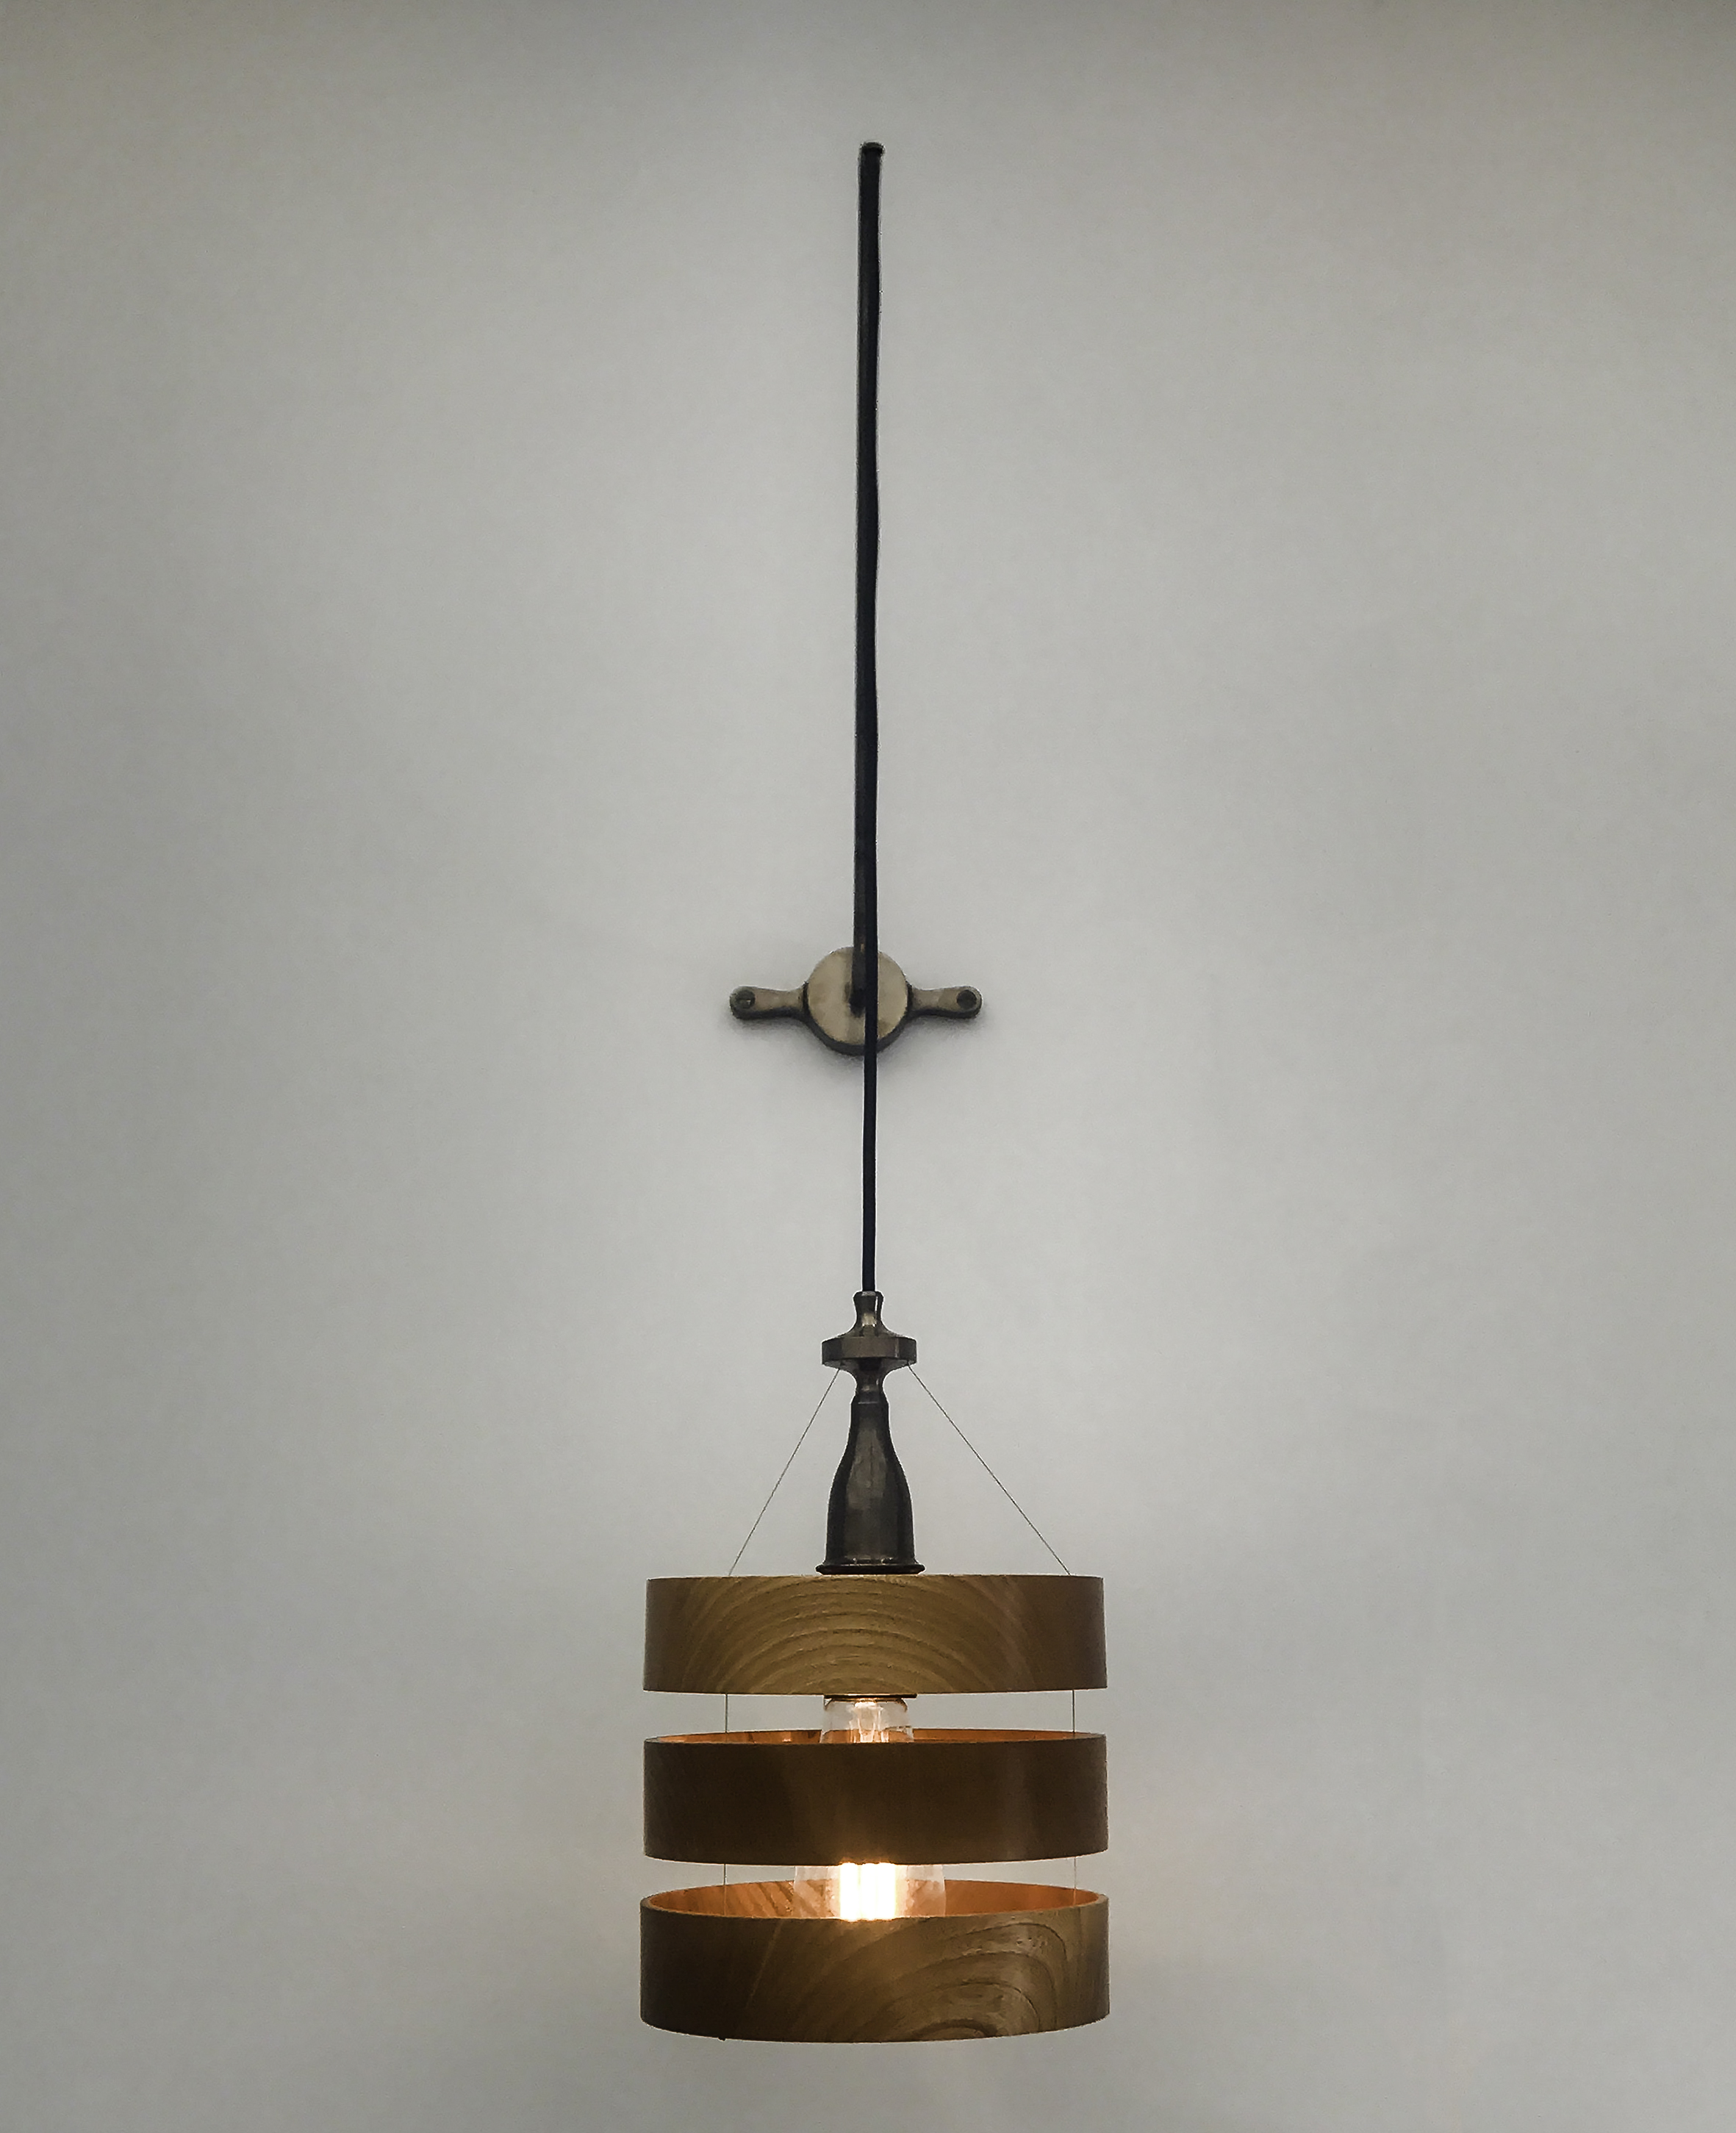 Treoran  wall light  Wood, blackened brass; hand finished with natural oils and wax.